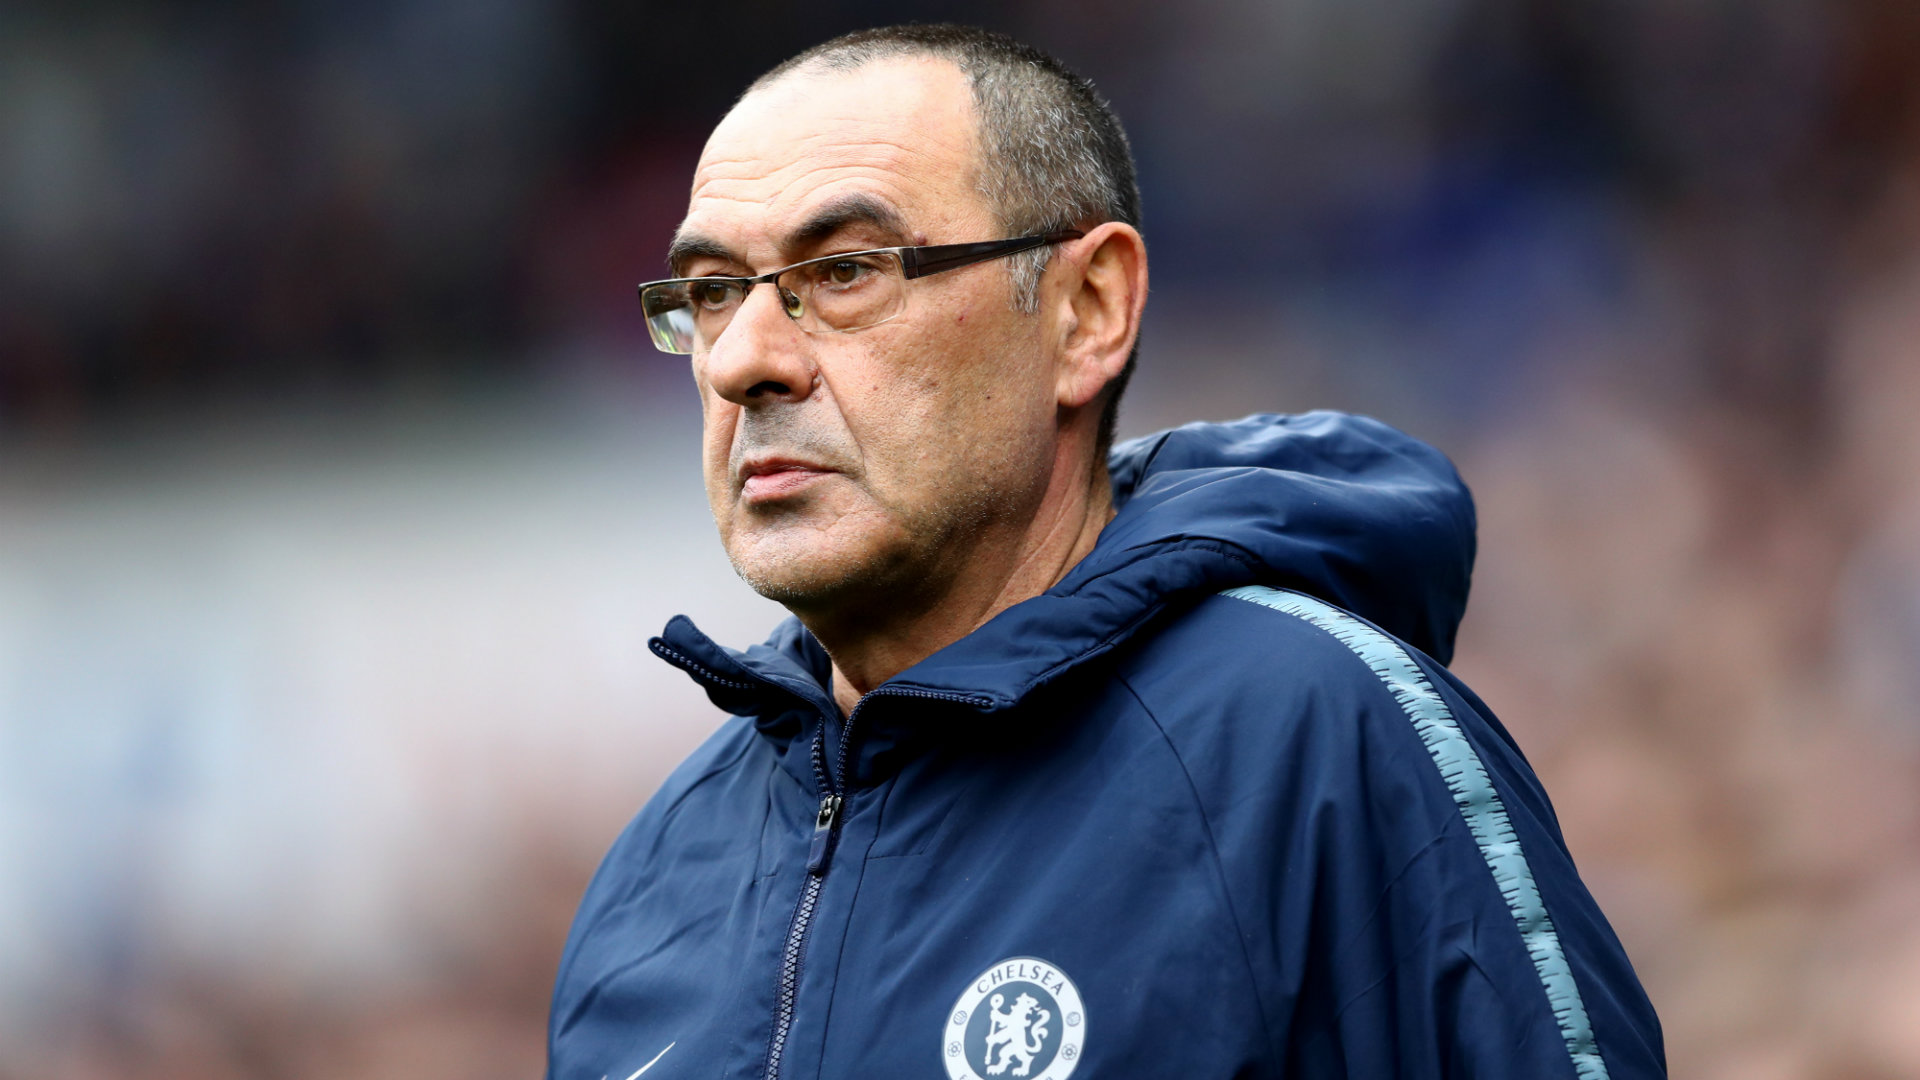 Chelsea's Hudson-Odoi ready for league start, says Sarri